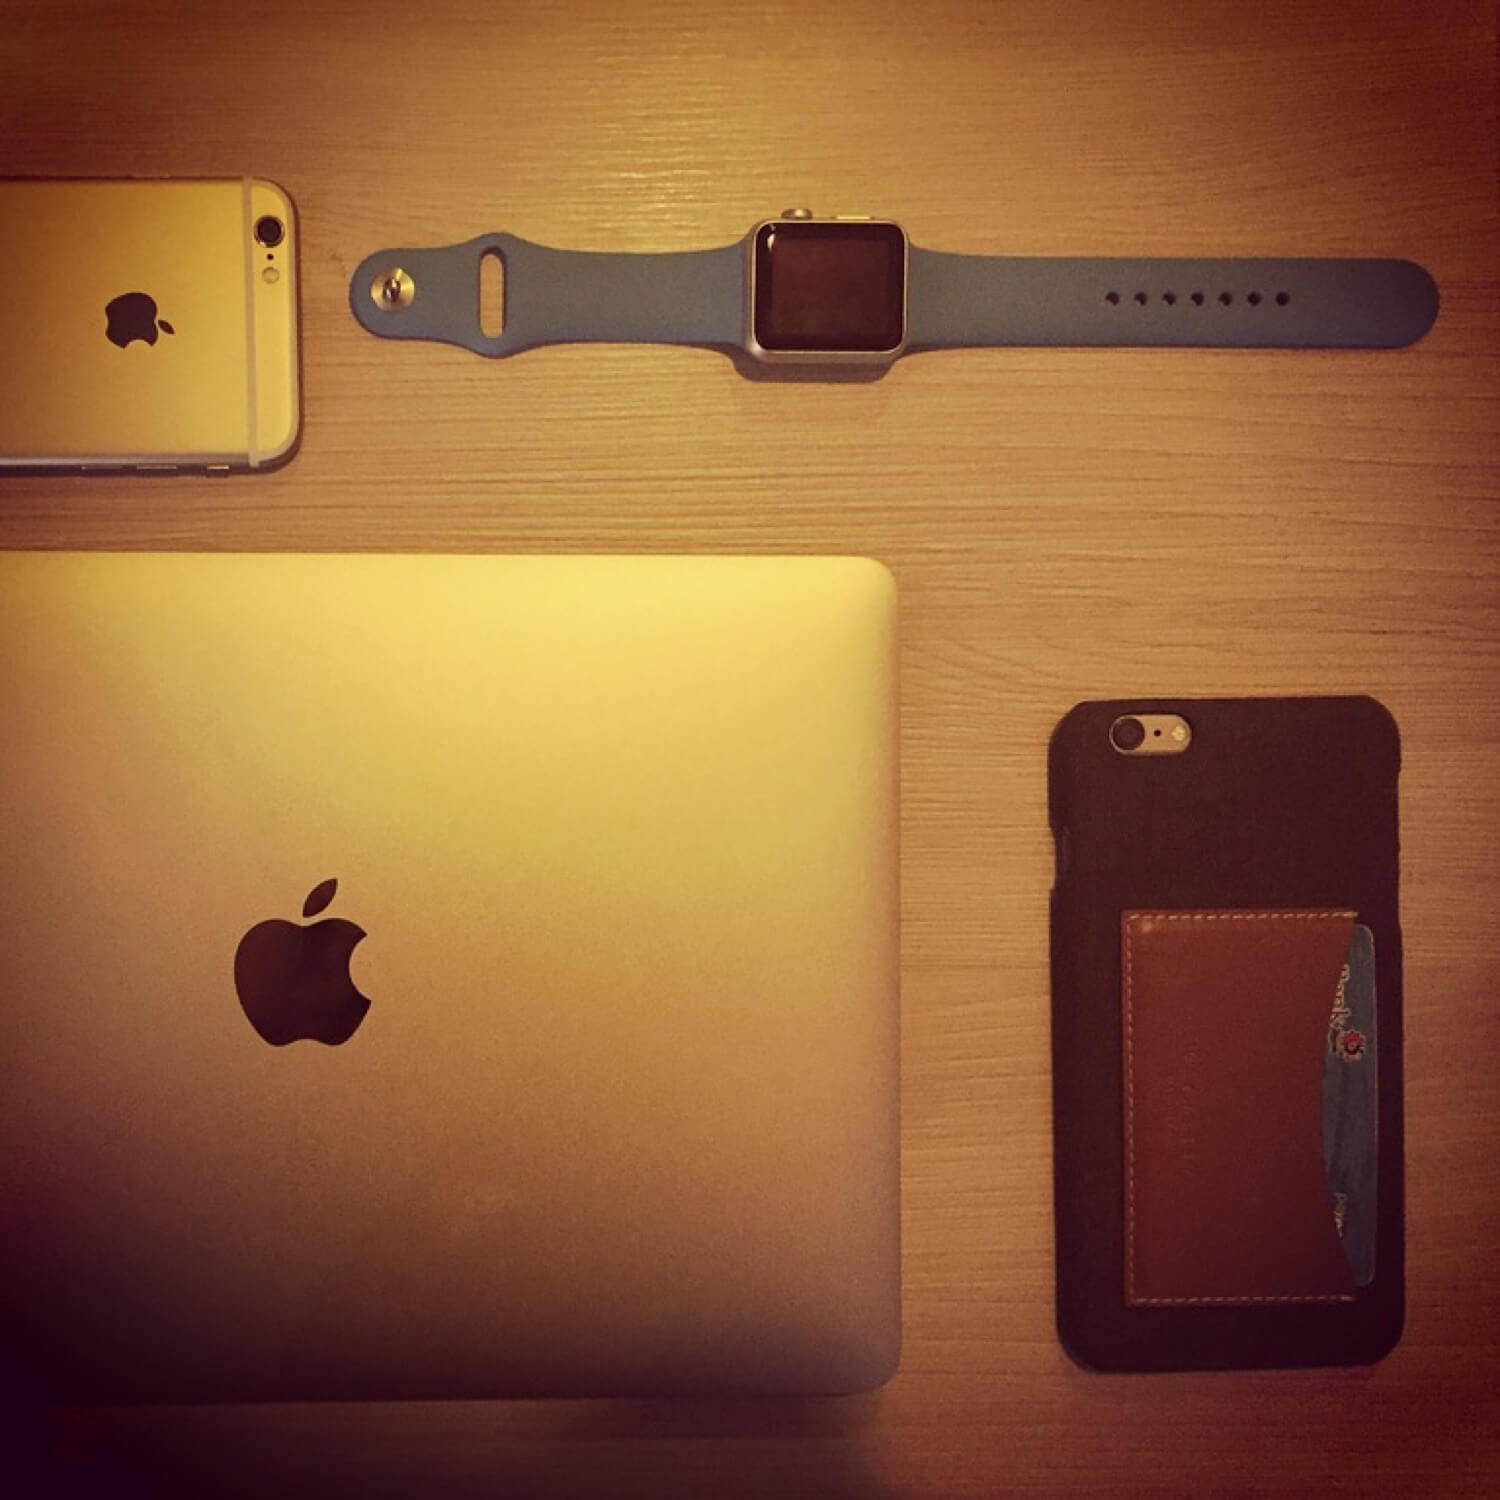 The Podcast #2 - Two Apple Watches that don't belong to us